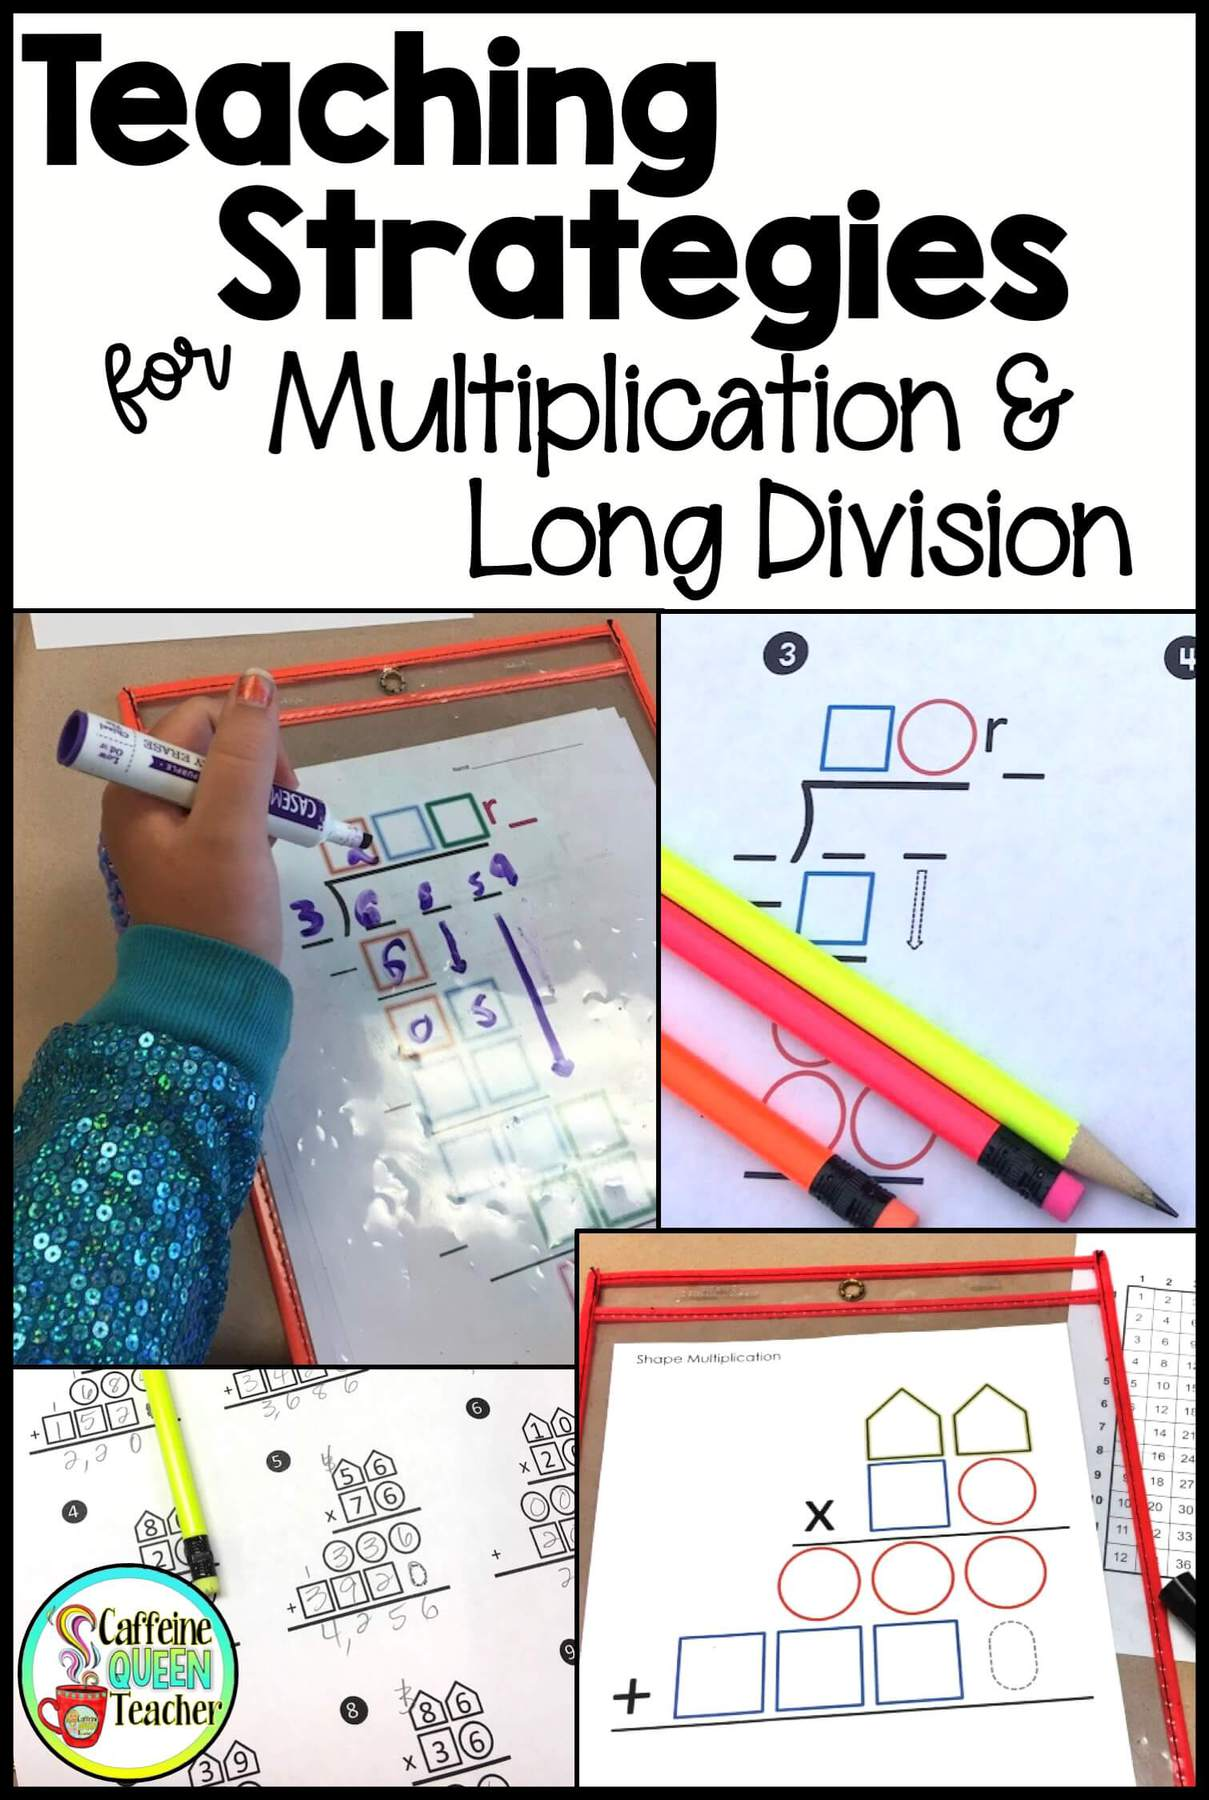 small resolution of How to Teach Multi-Digit Multiplication and Long Division - Caffeine Queen  Teacher